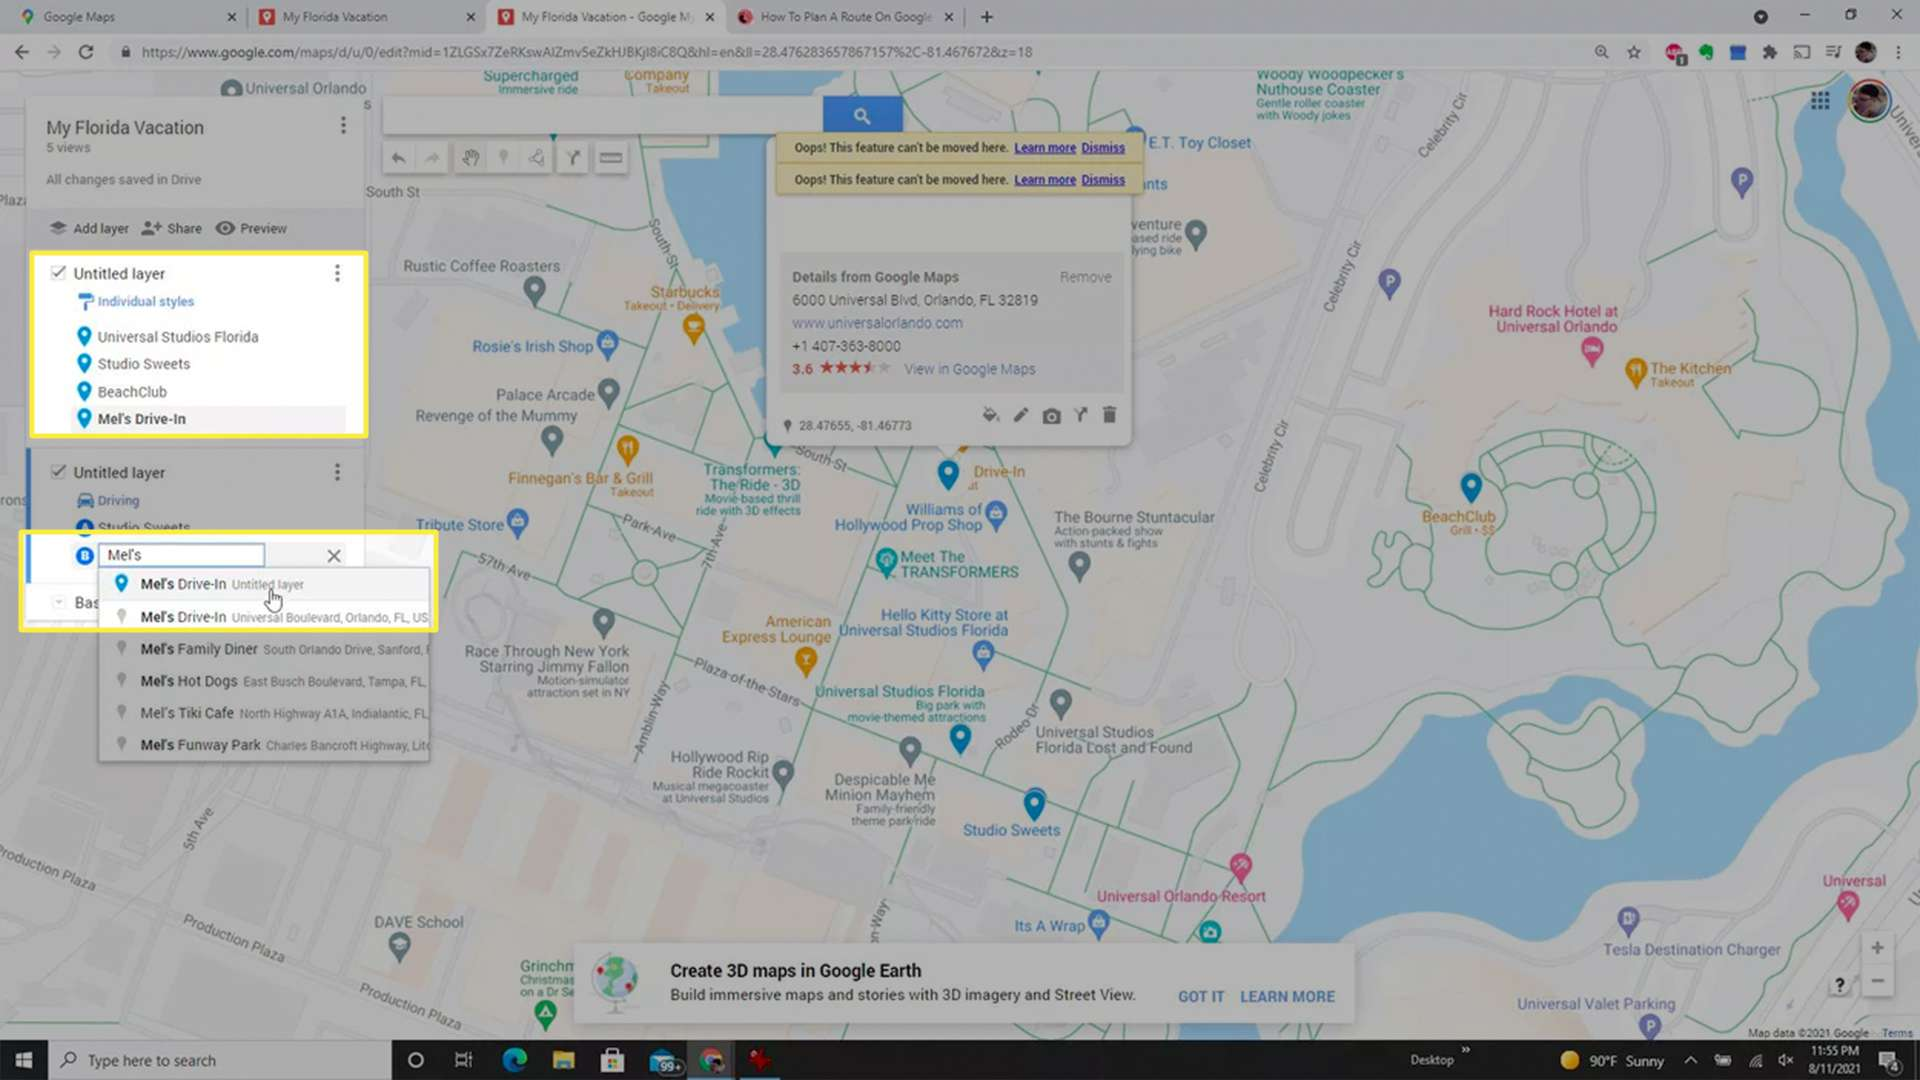 Searching for the next location in Google Maps when creating a custom driving route.